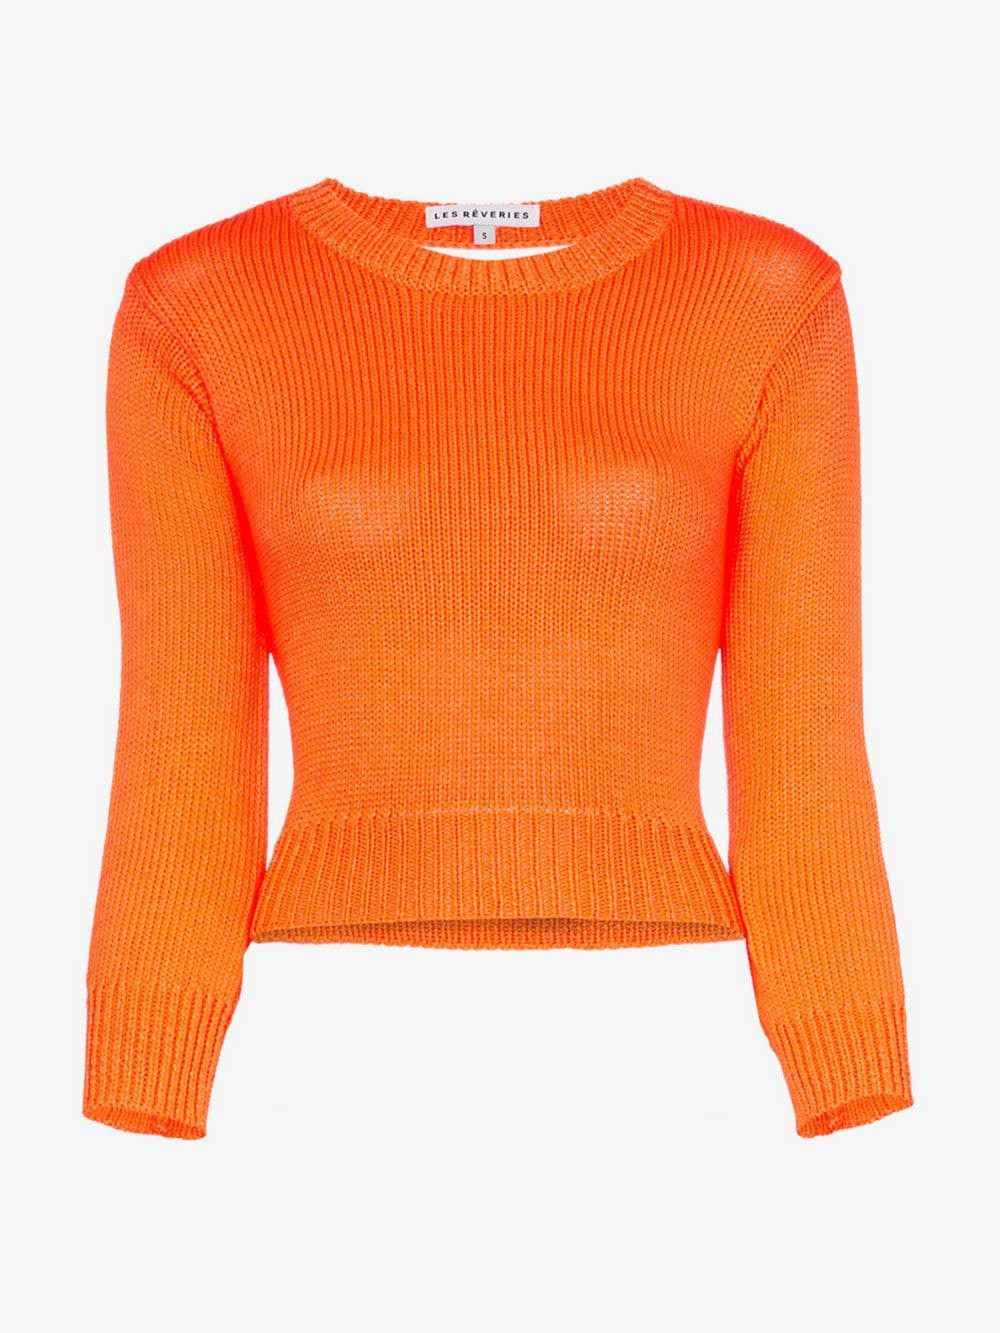 Les Reveries backless long-sleeved knitted crop top in orange